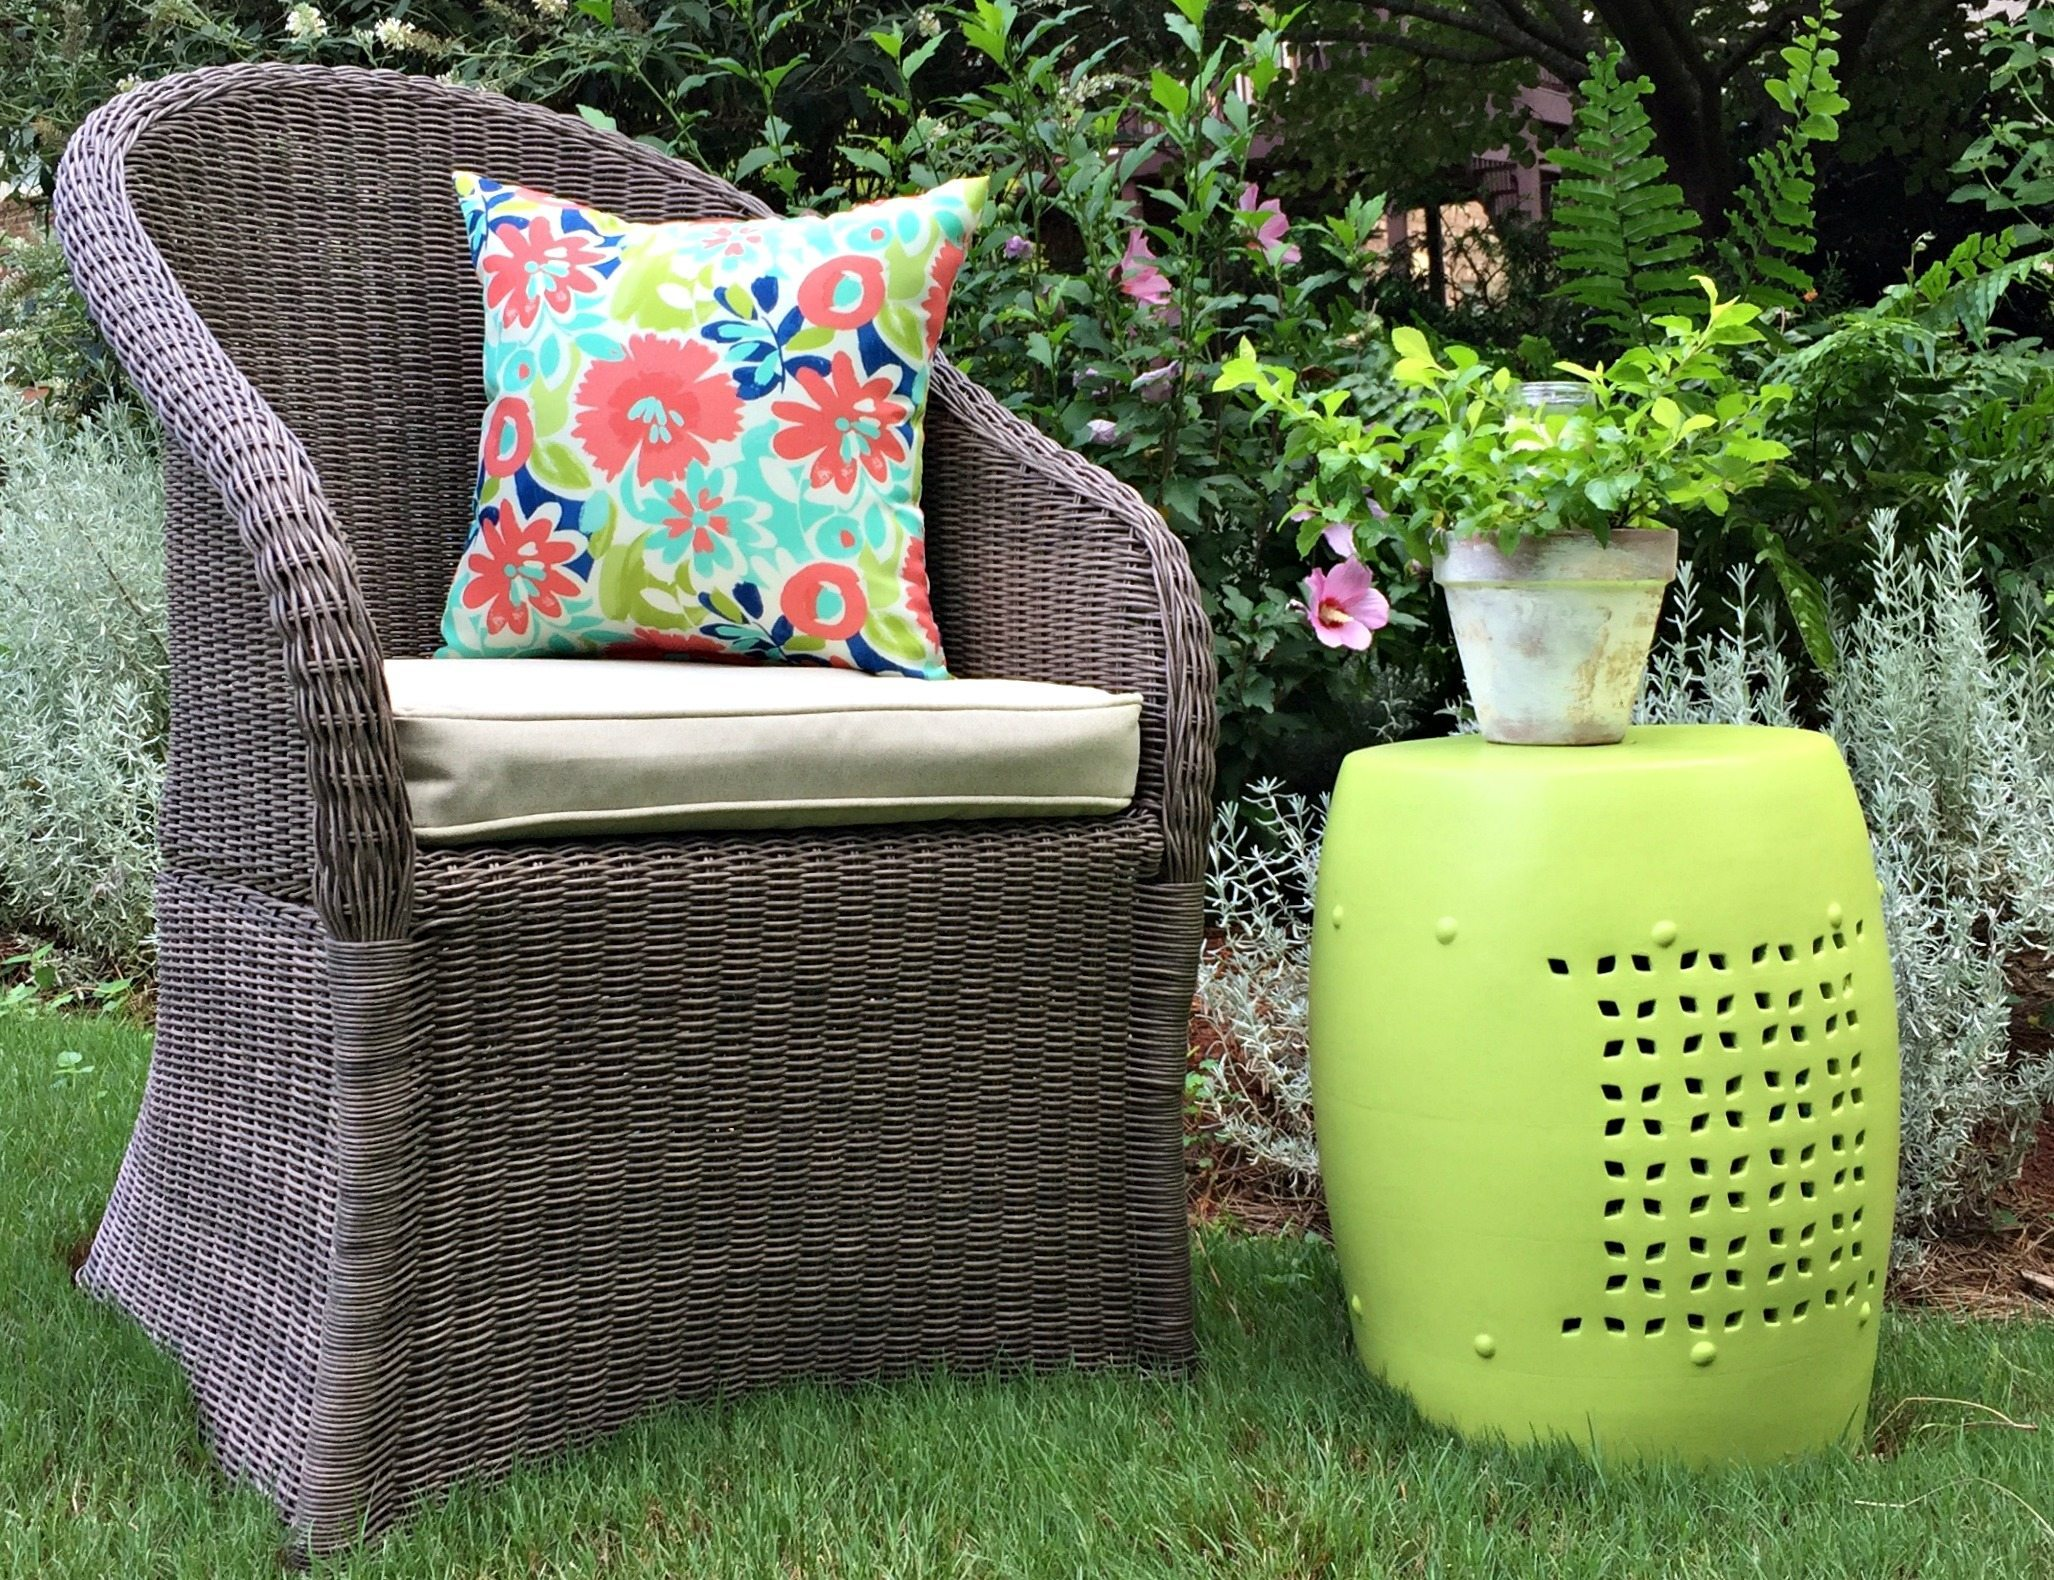 Thrifty makeover - Outdoor garden stool makeover with DecoArt Americana Decor outdoor living paint